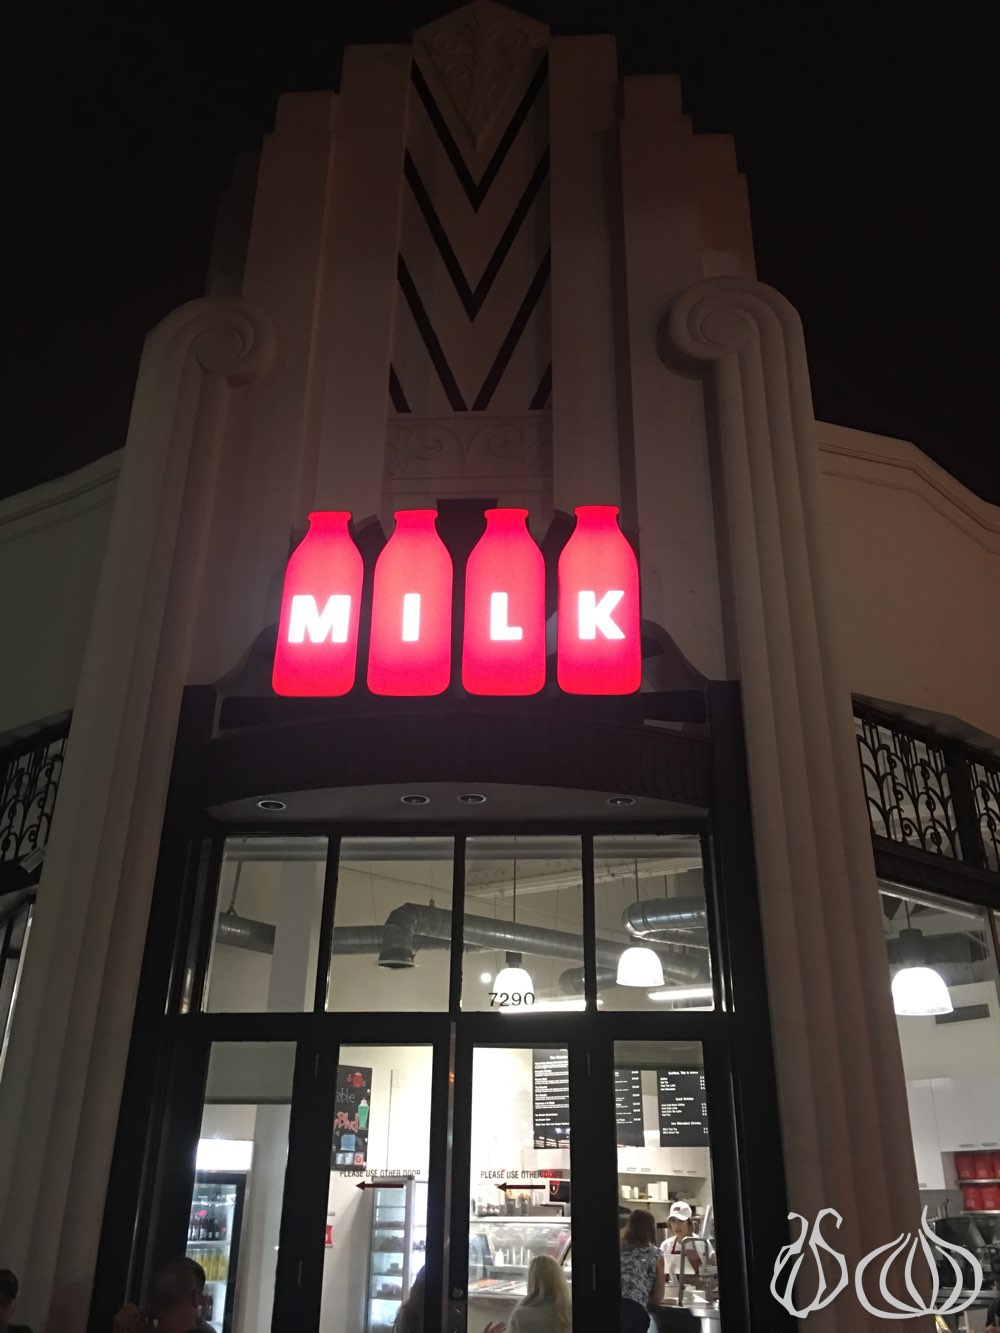 milk-pastry-ice-cream-los-angeles212016-11-16-07-47-59